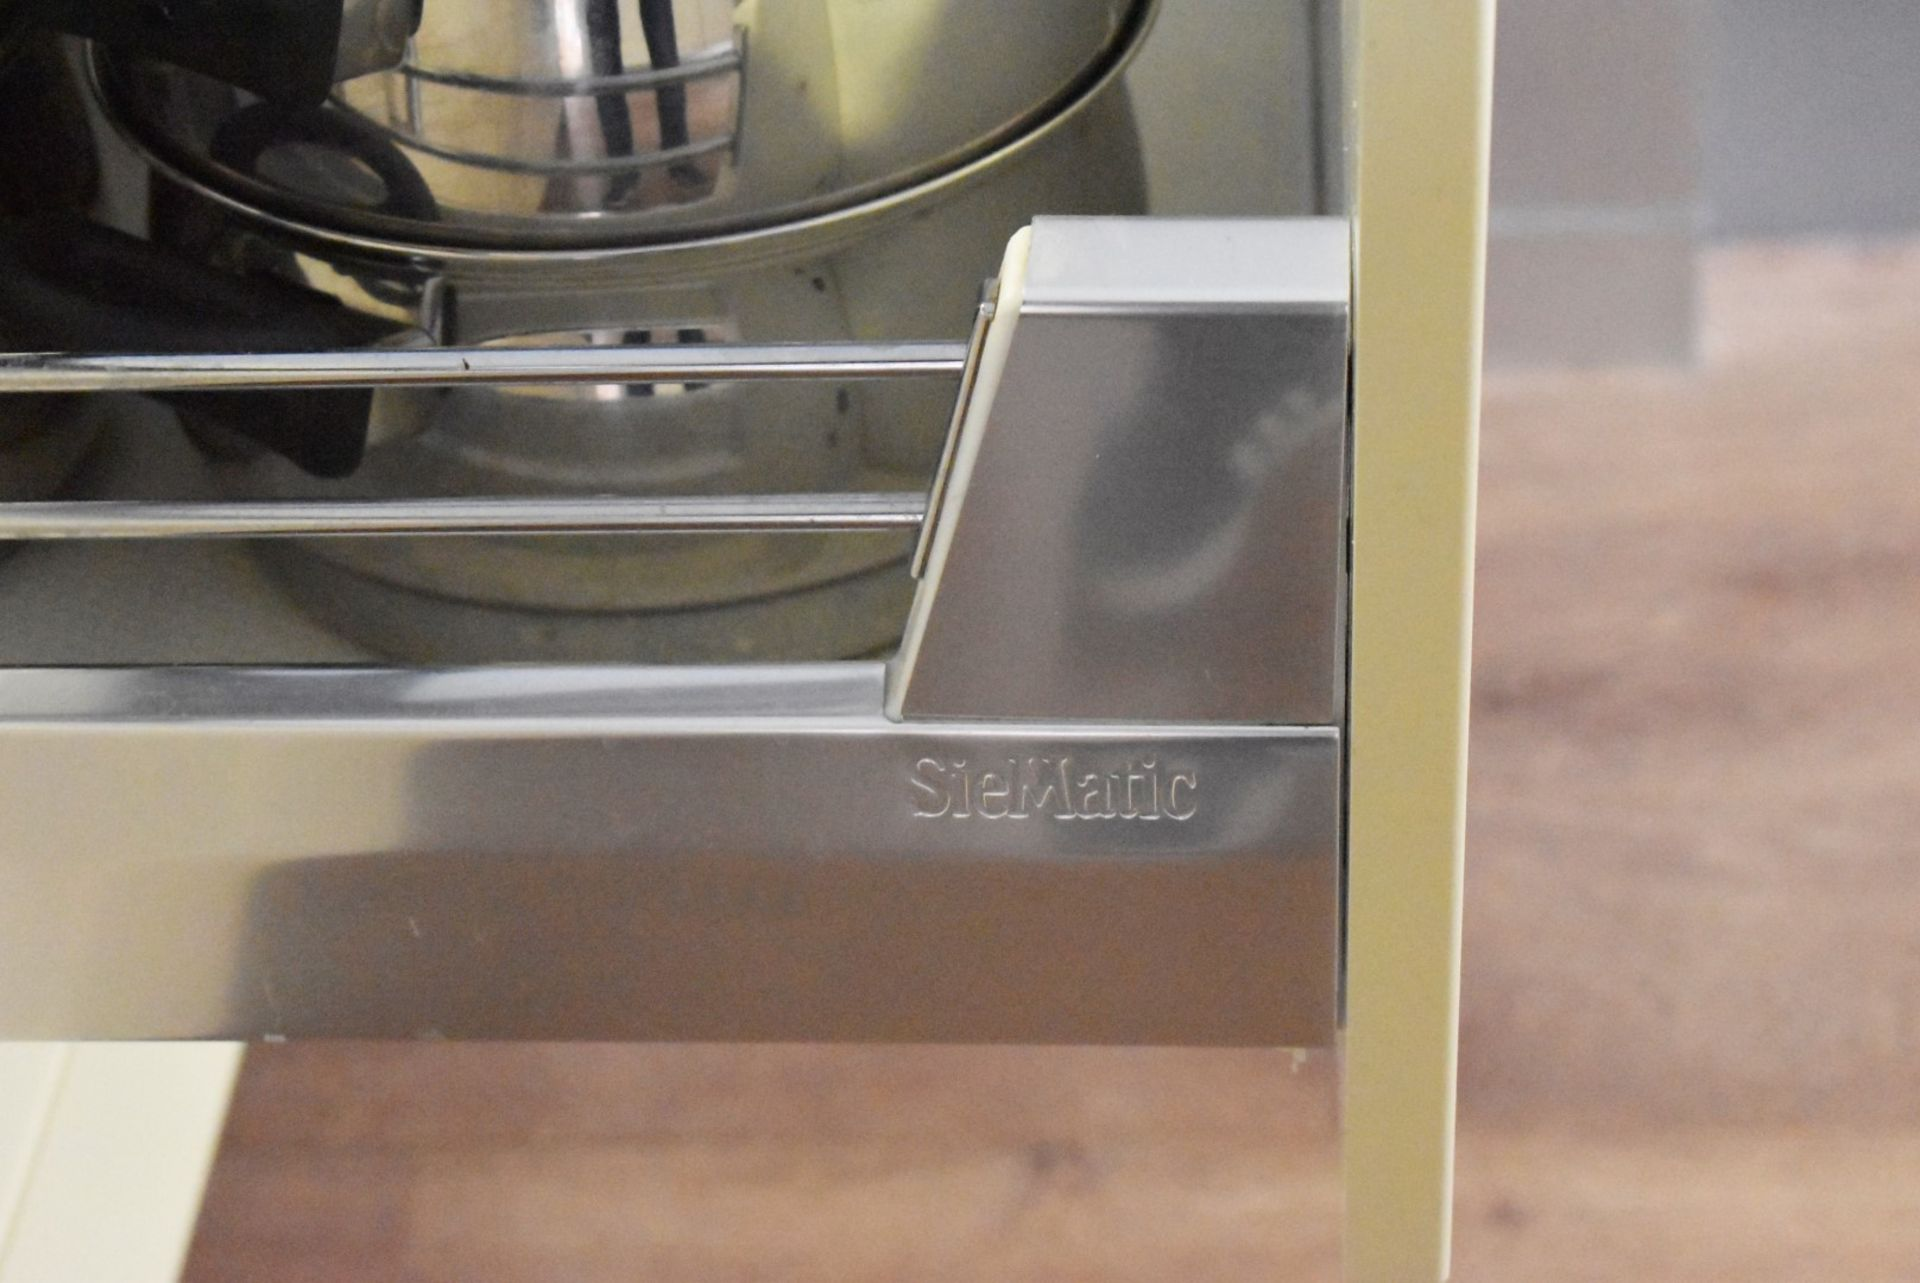 1 x SieMatic Contemporary Fitted Kitchen With Appliances - Features Shaker Style Doors, Central - Image 12 of 96